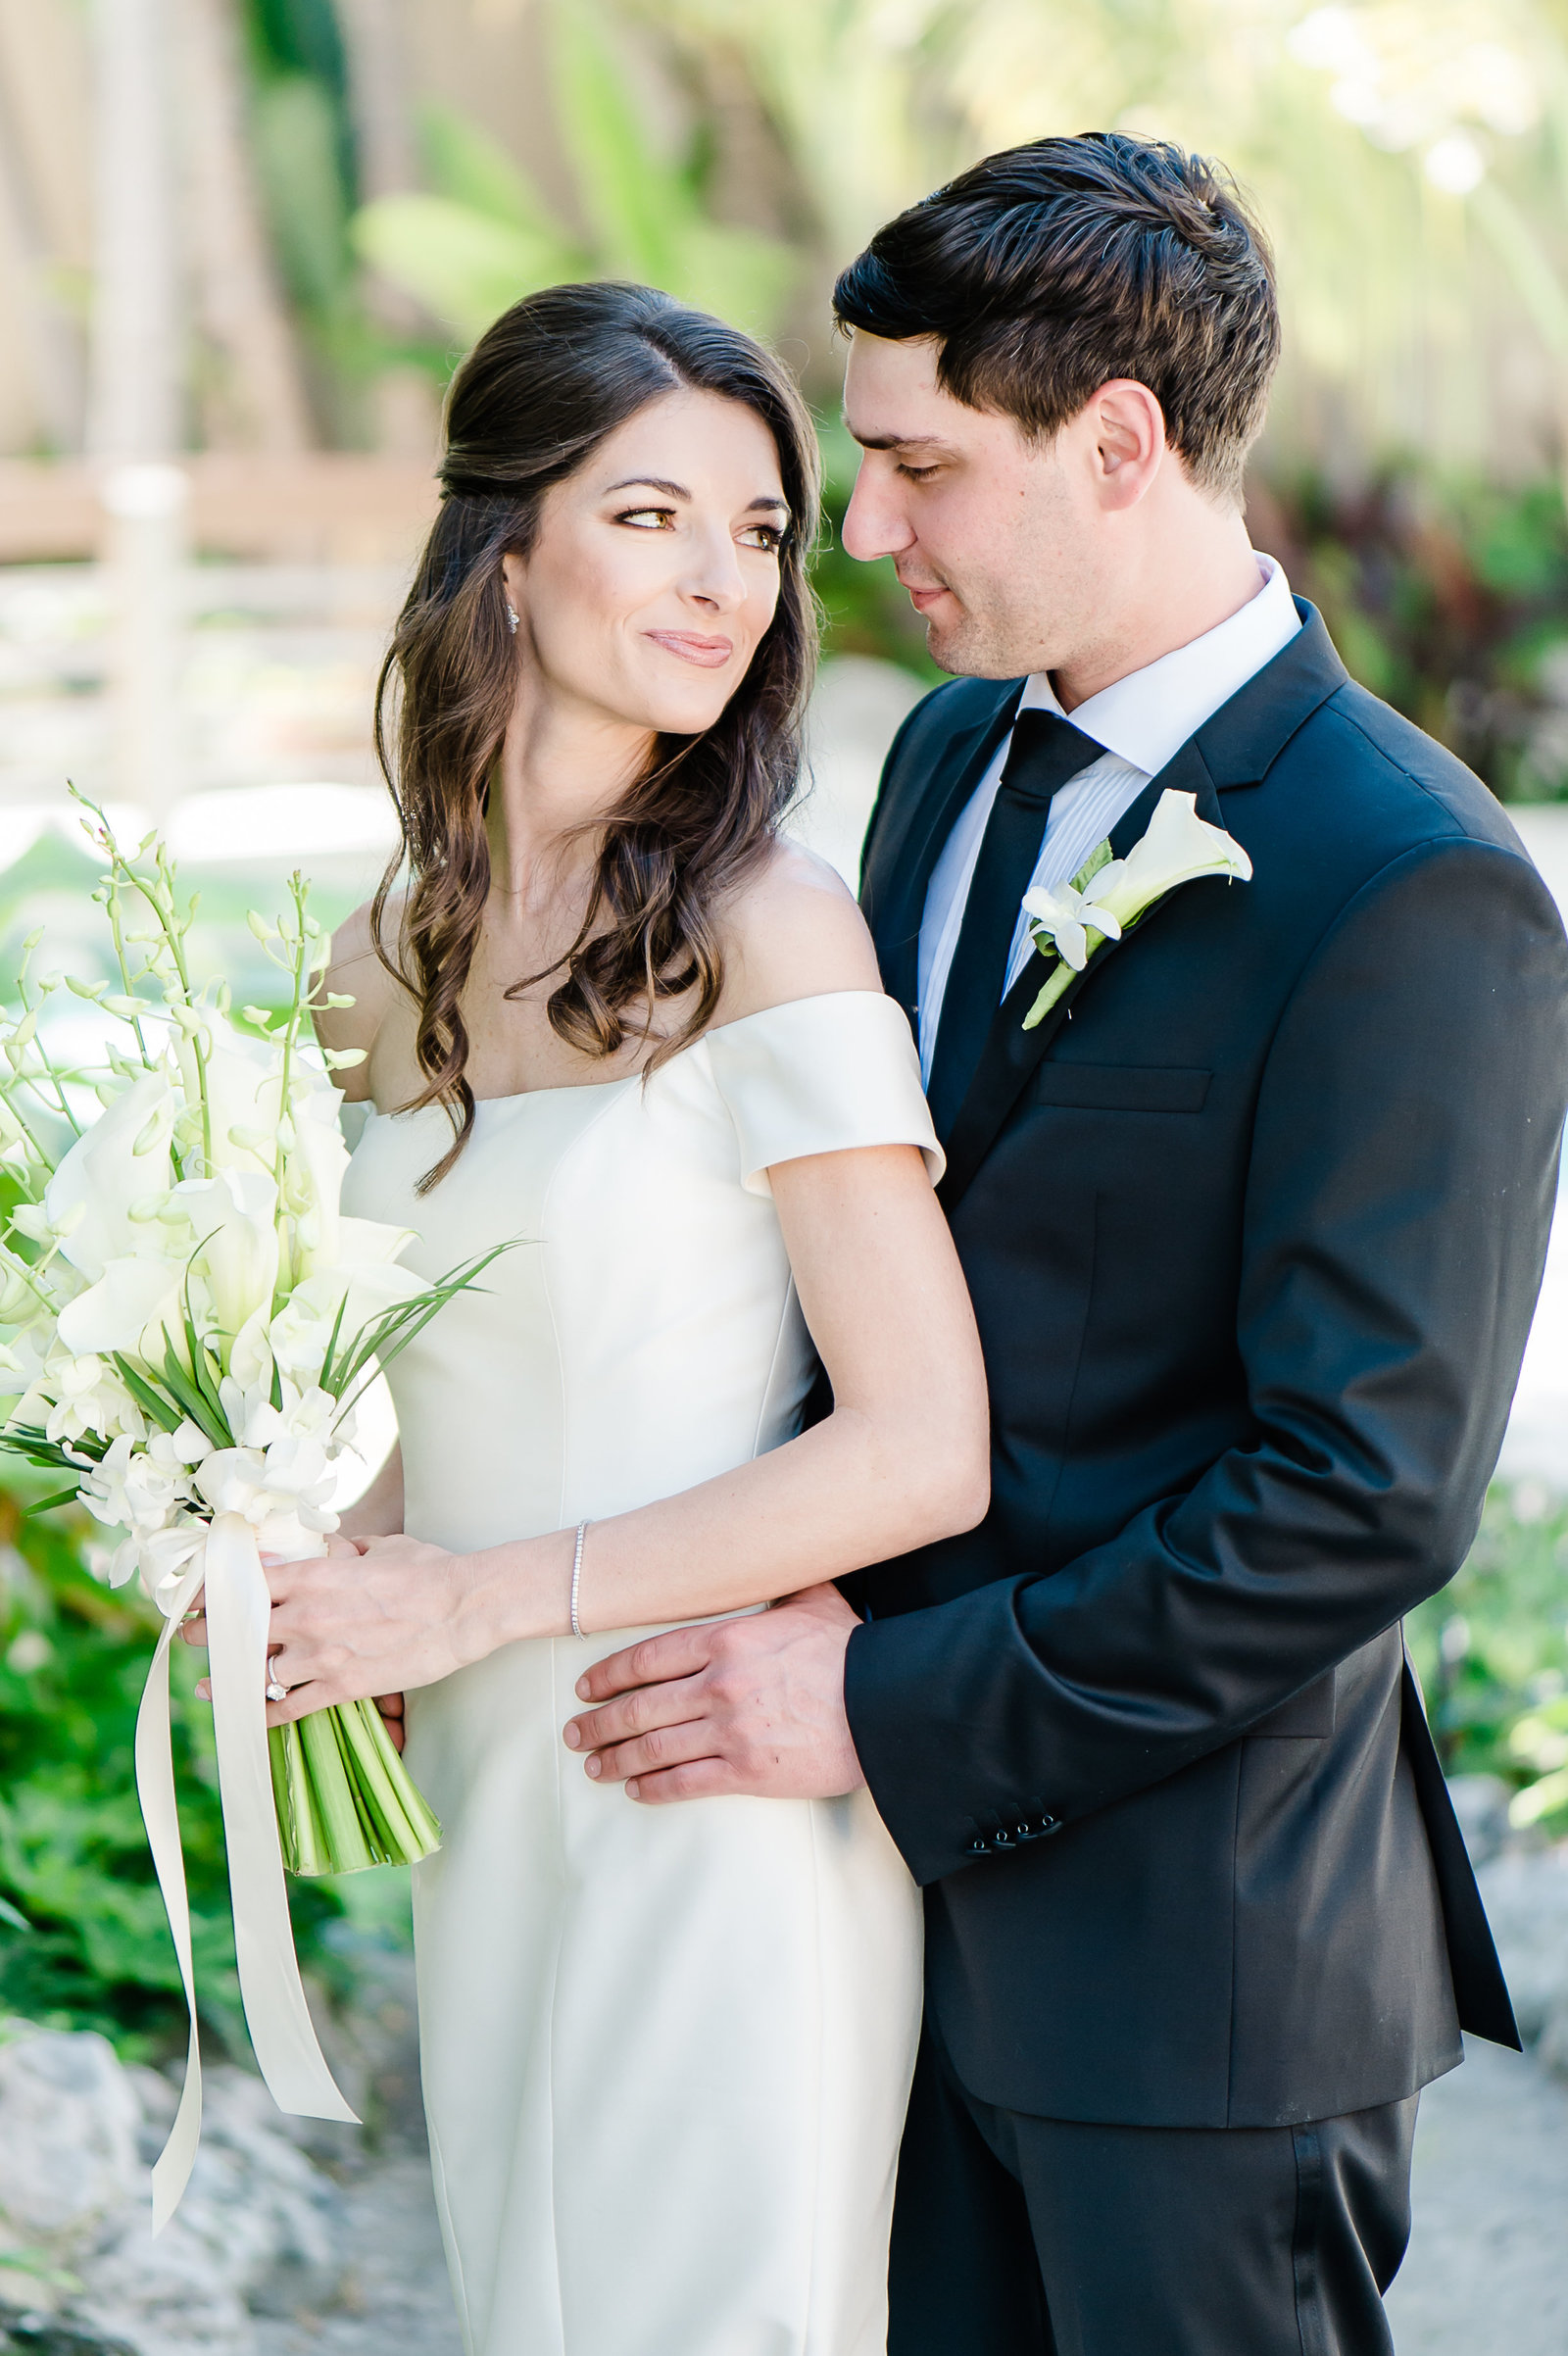 Light and Airy Wedding Photographer